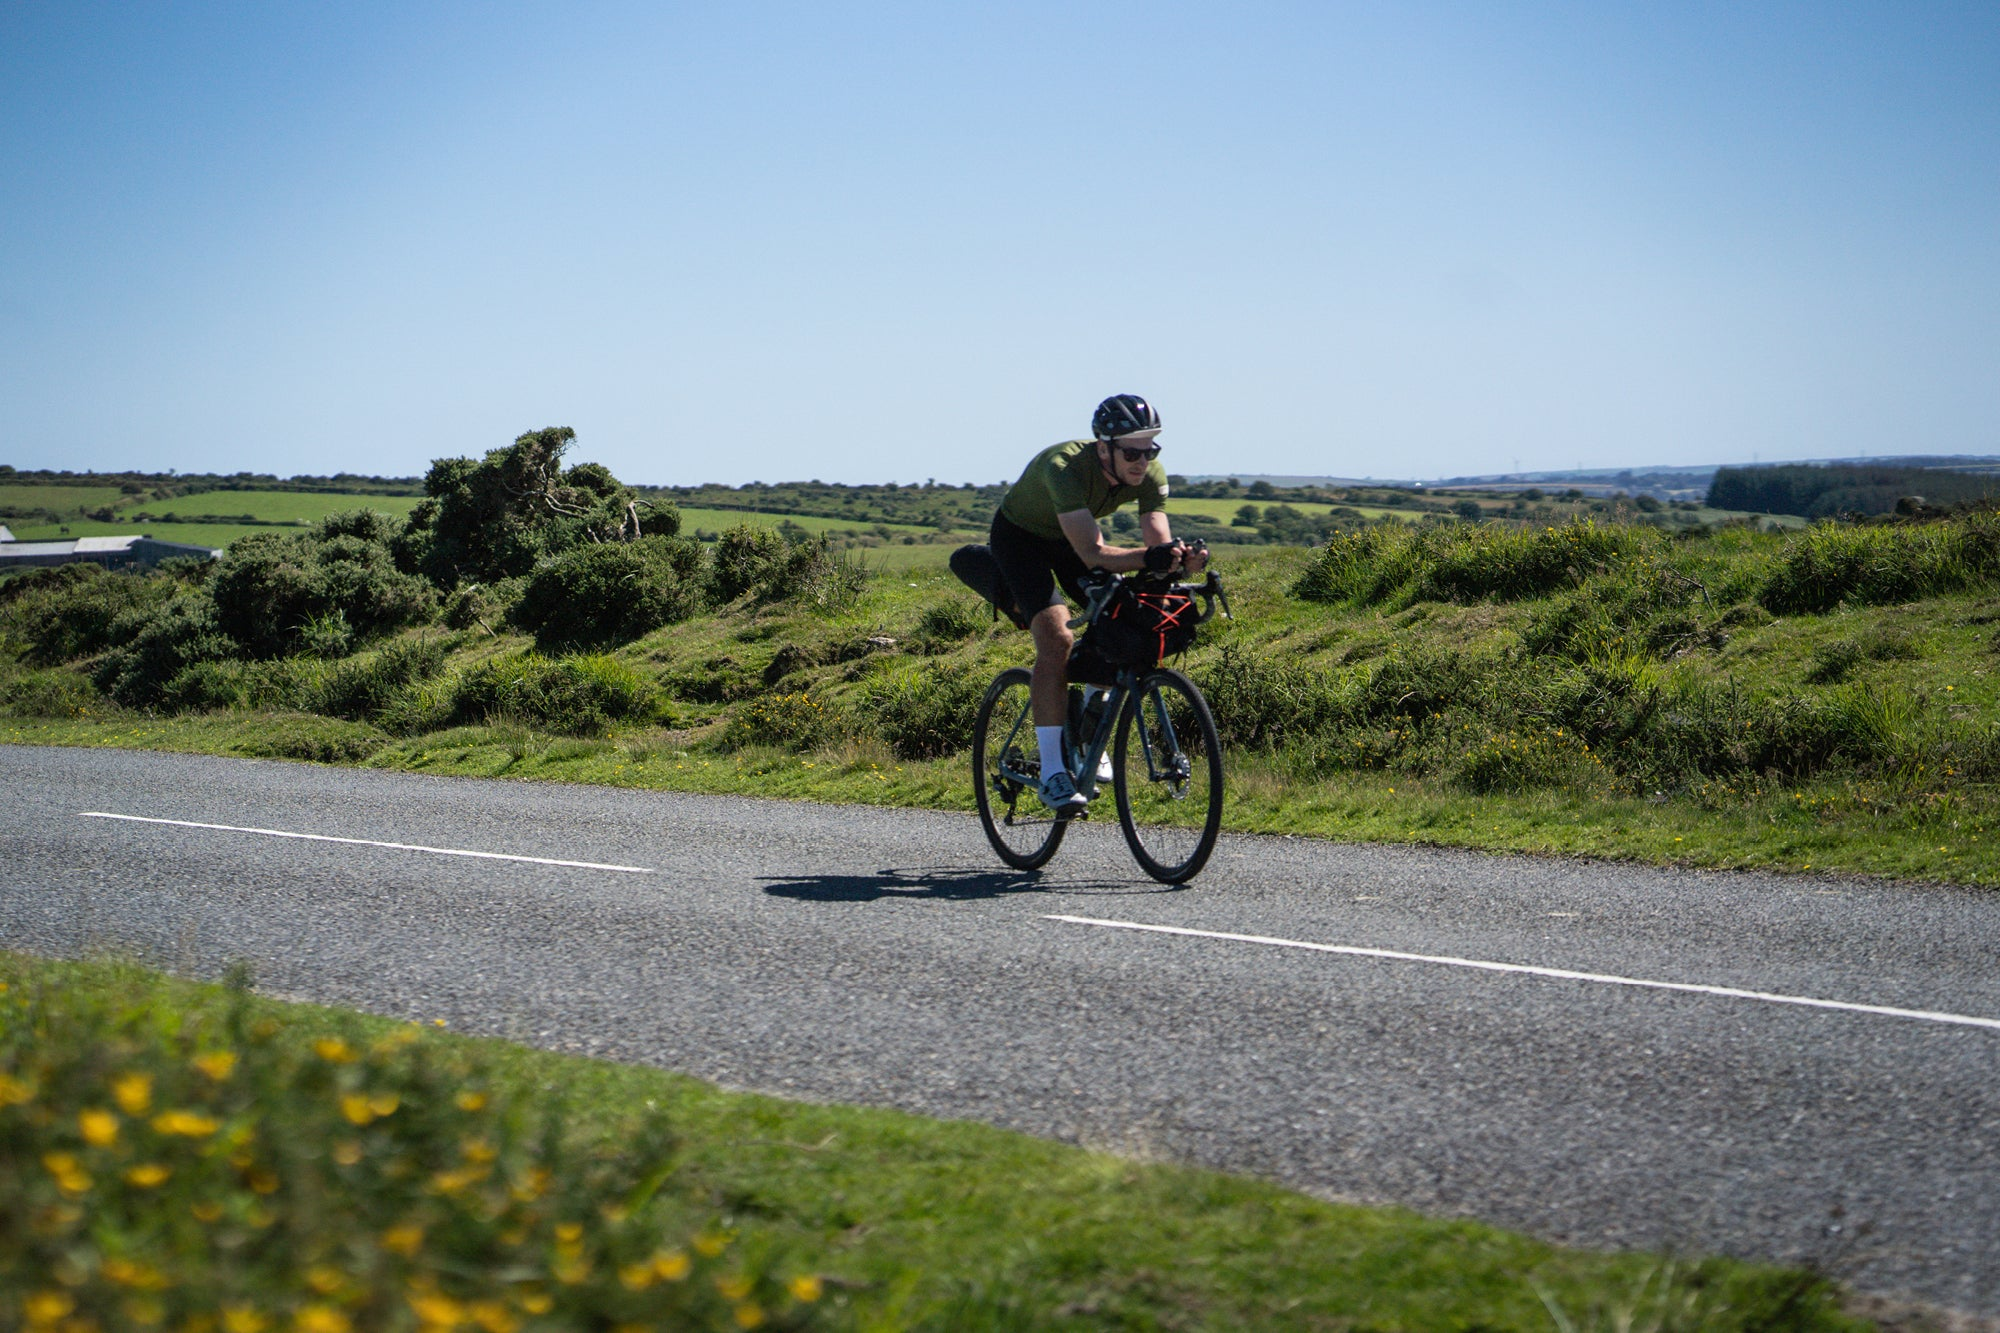 bikepacking great escape british adventure collecting LETJOG lands end john o groats